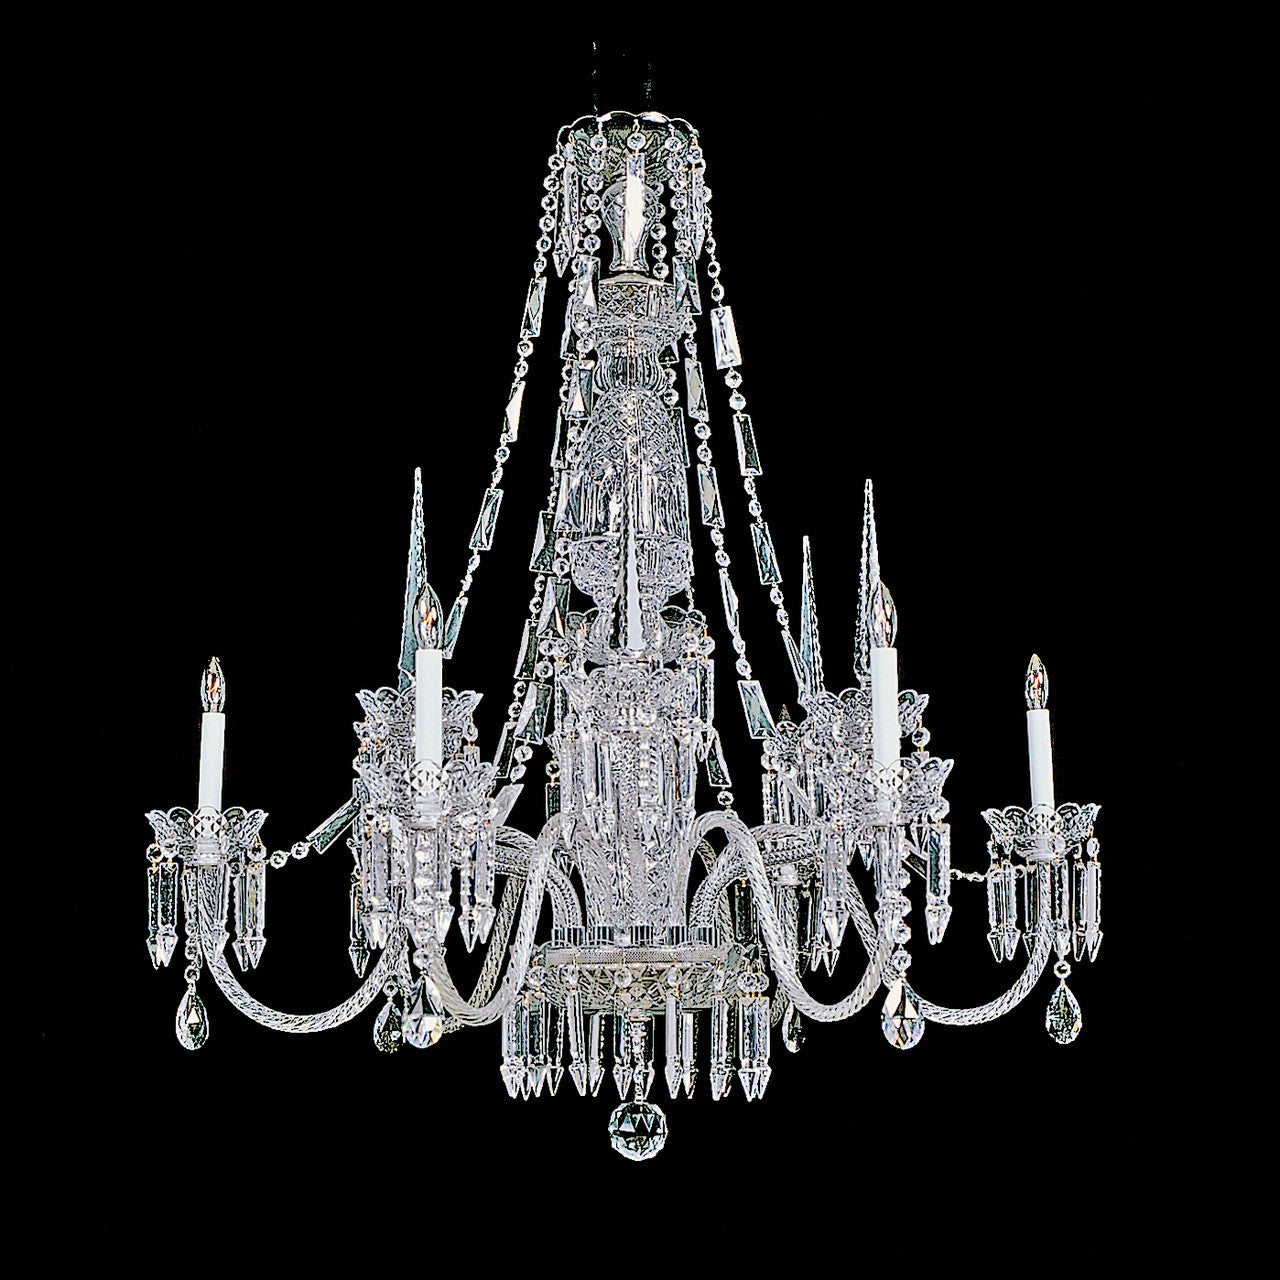 Crystal chandeliers and wall sconces direct free shipping kings 6 light and 6 spear beauregard chandelier reproduction aloadofball Choice Image